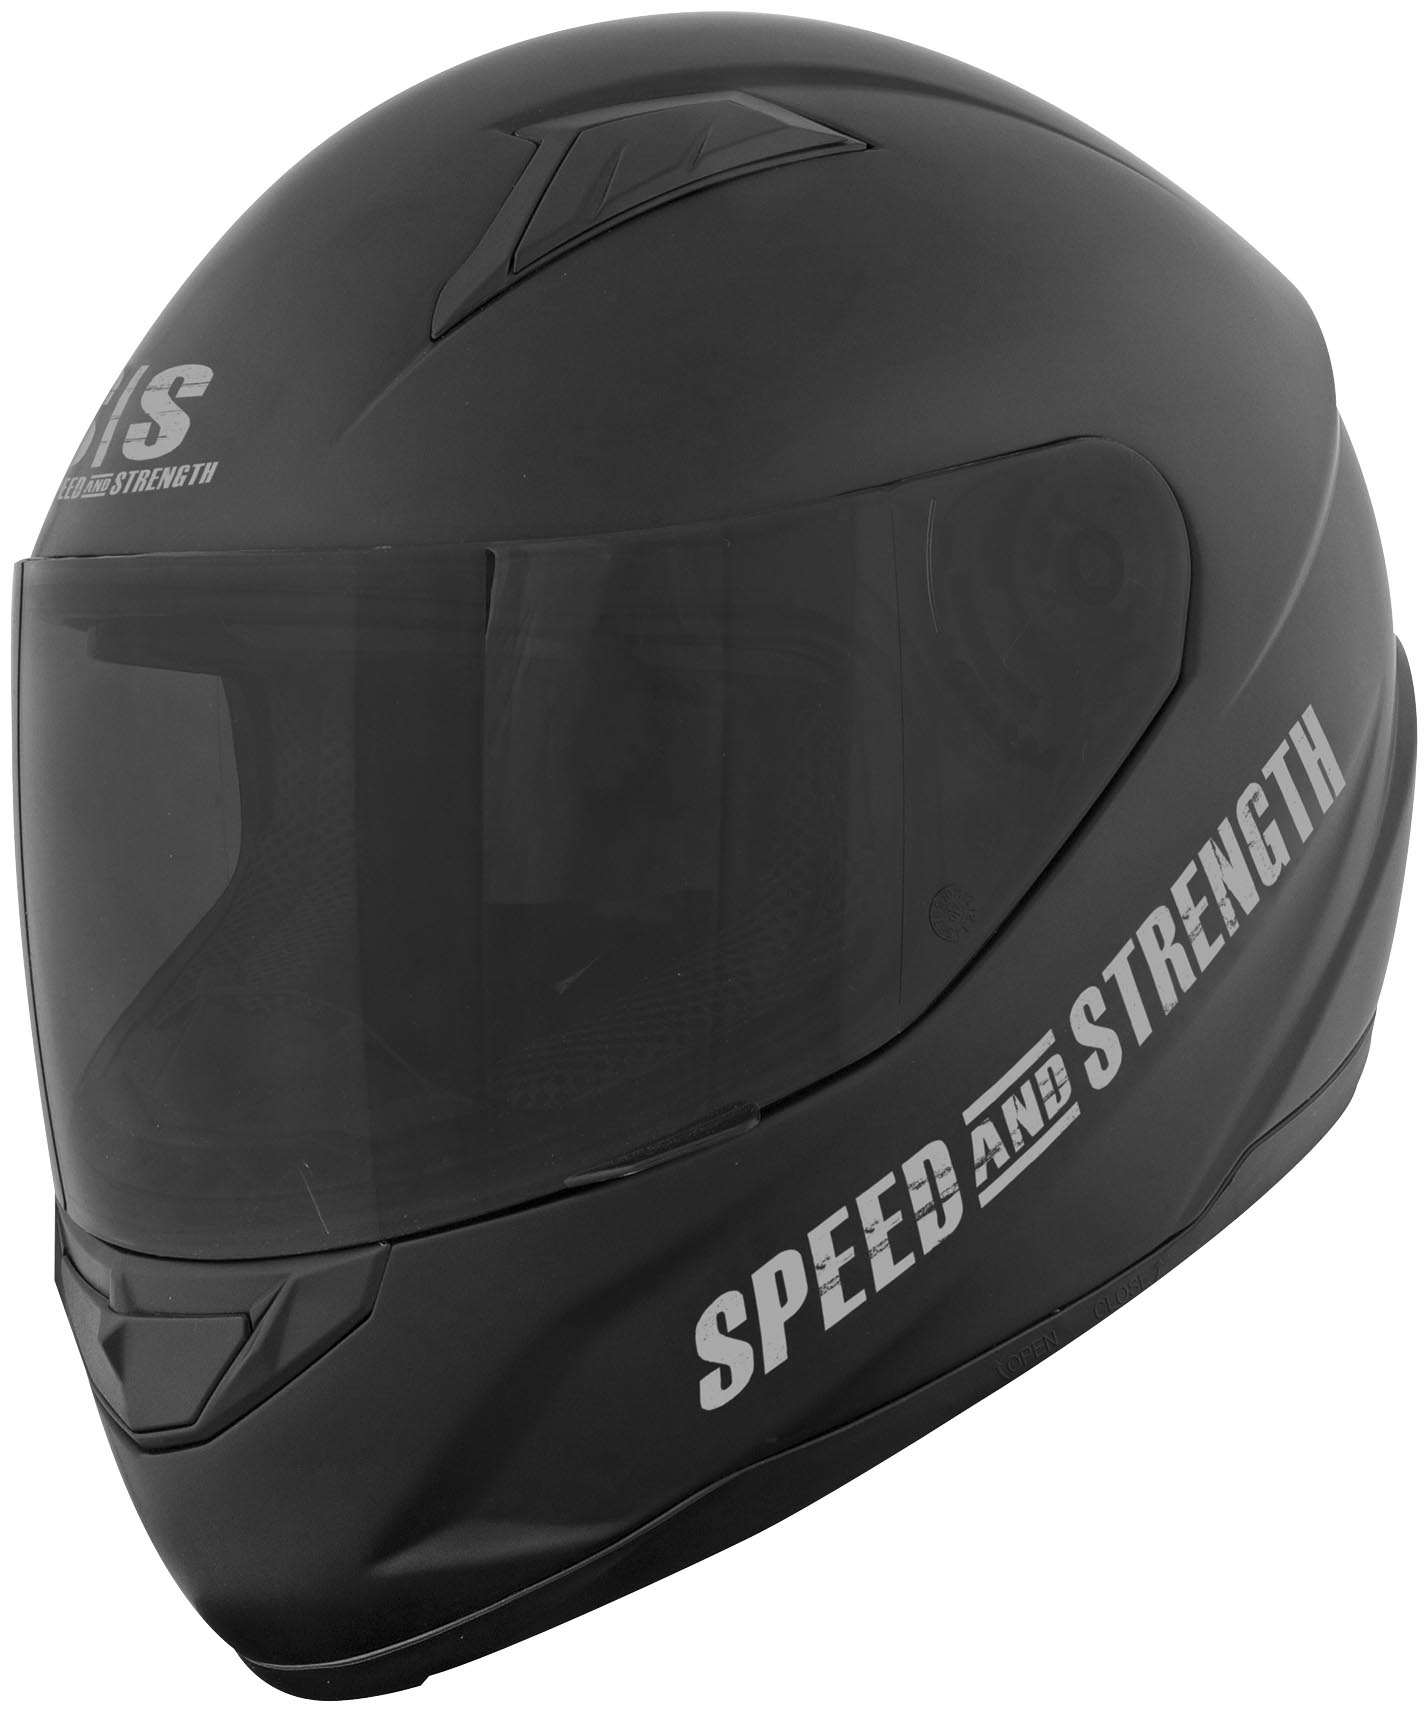 Off the chain ss1500 full face motorcycle helmet matte black